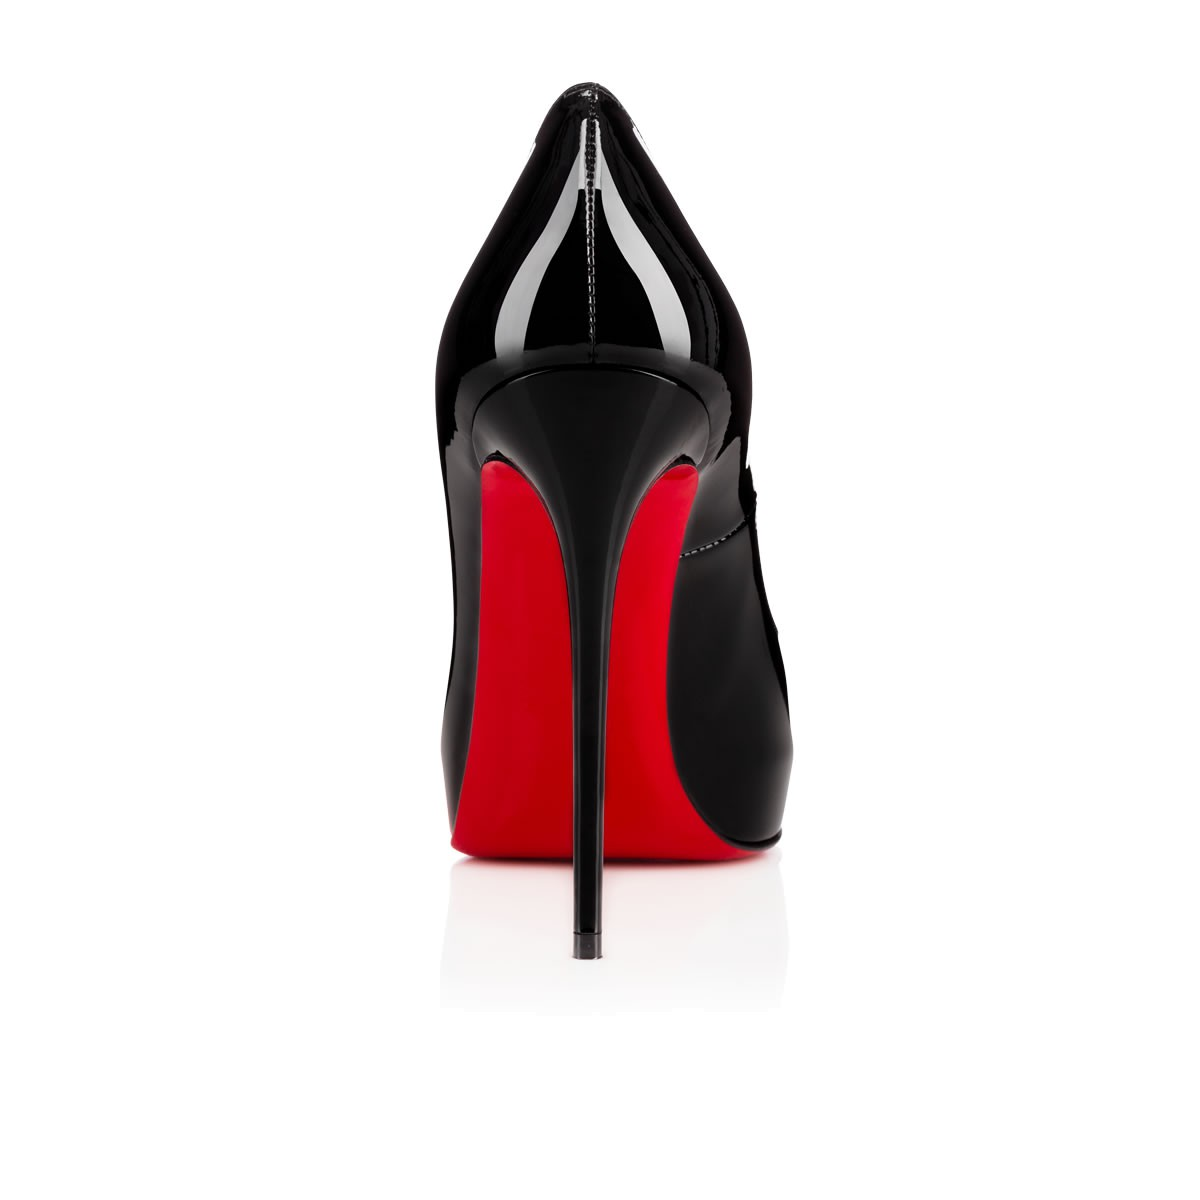 58d5faca8e3 ... Shoes - New Very Prive - Christian Louboutin ...